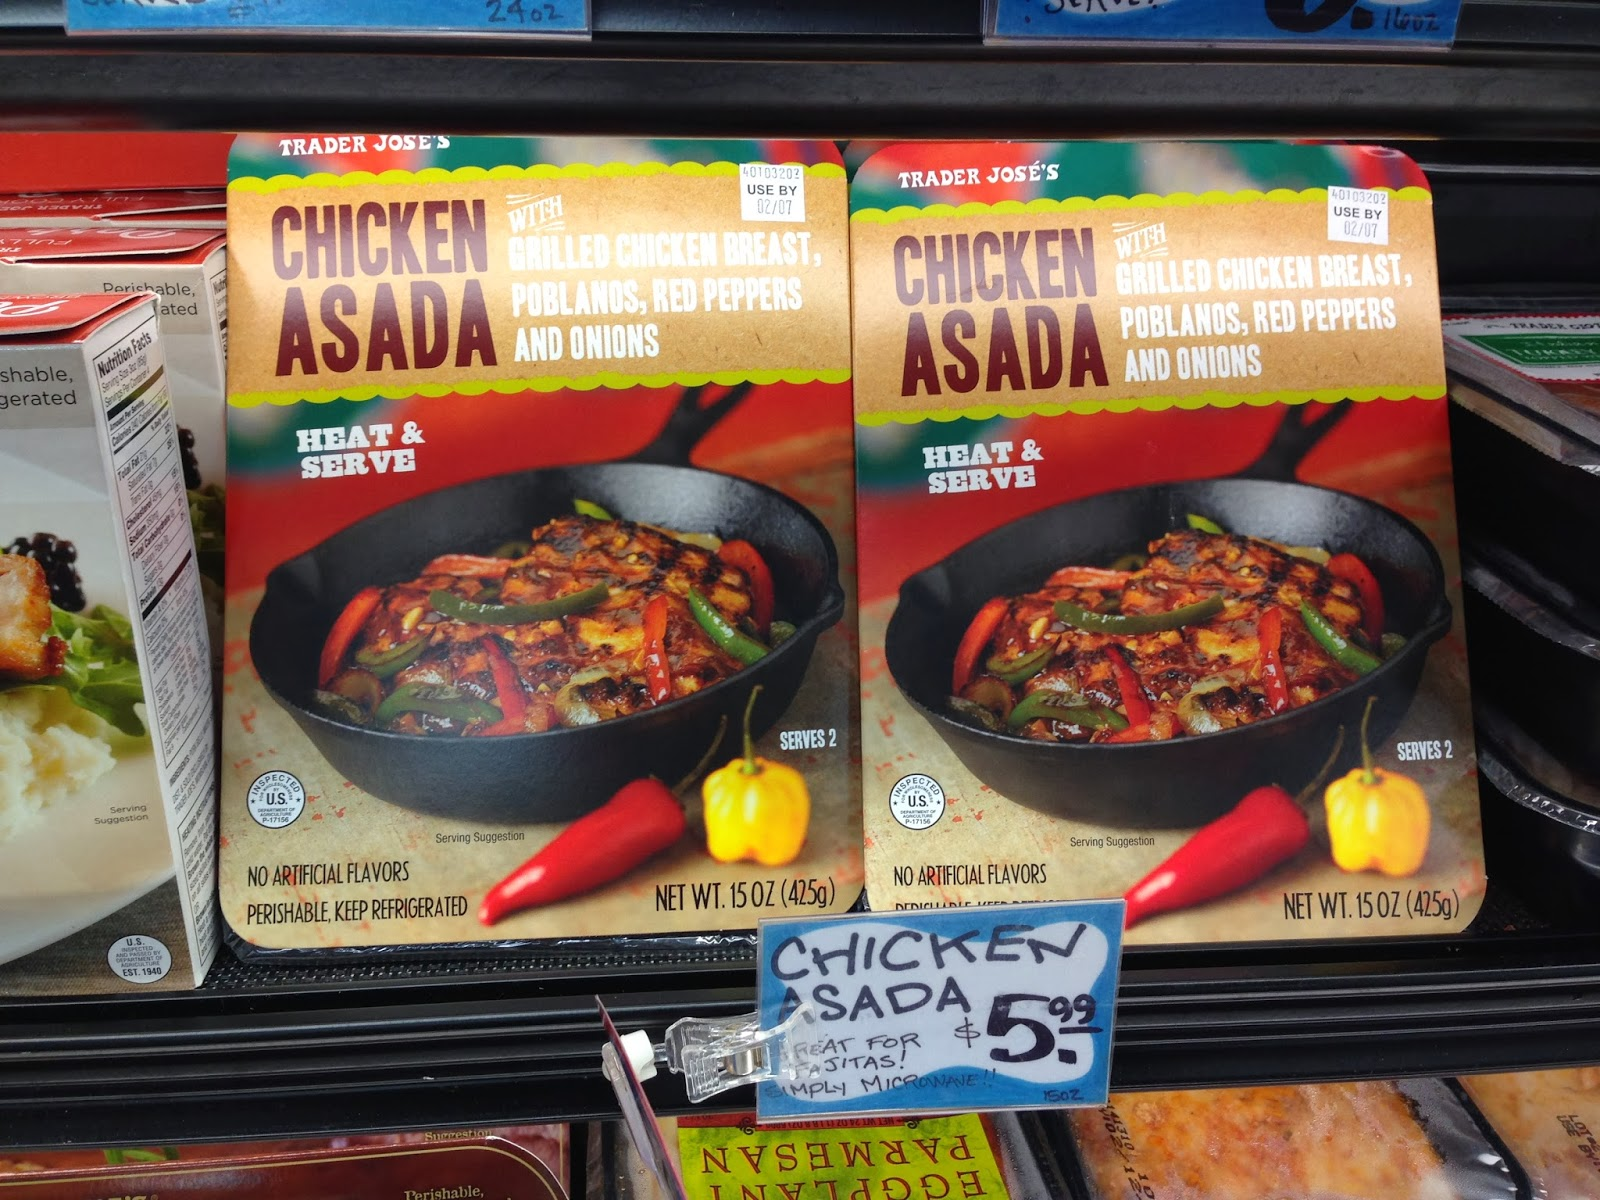 Trader+Joes+Chicken+Asada+Eggface+New+Product+Find Weight Loss Recipes New Product Alert   Trader Joes (Joses) Chicken Asada